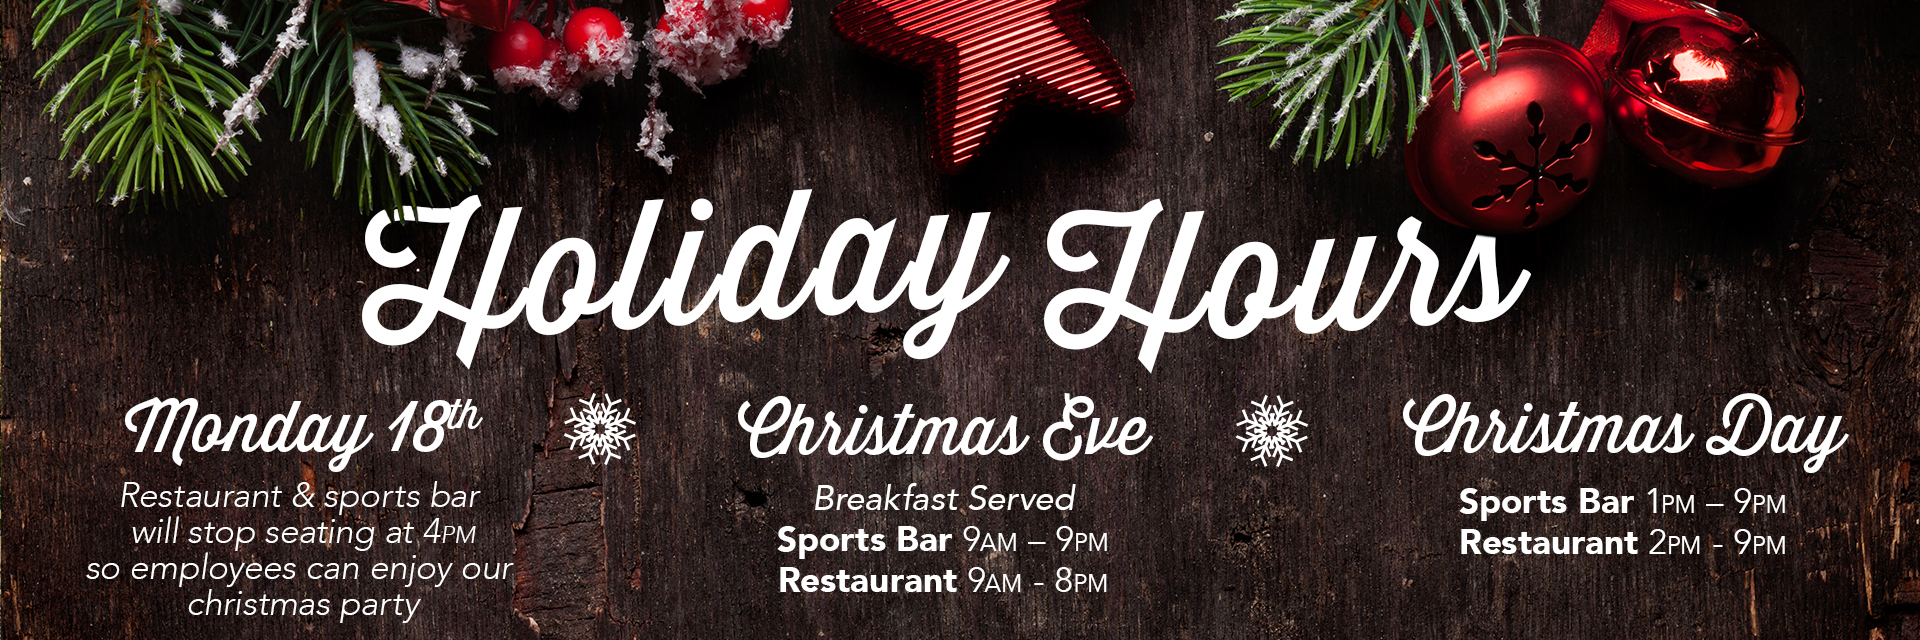 holiday-hours-slider